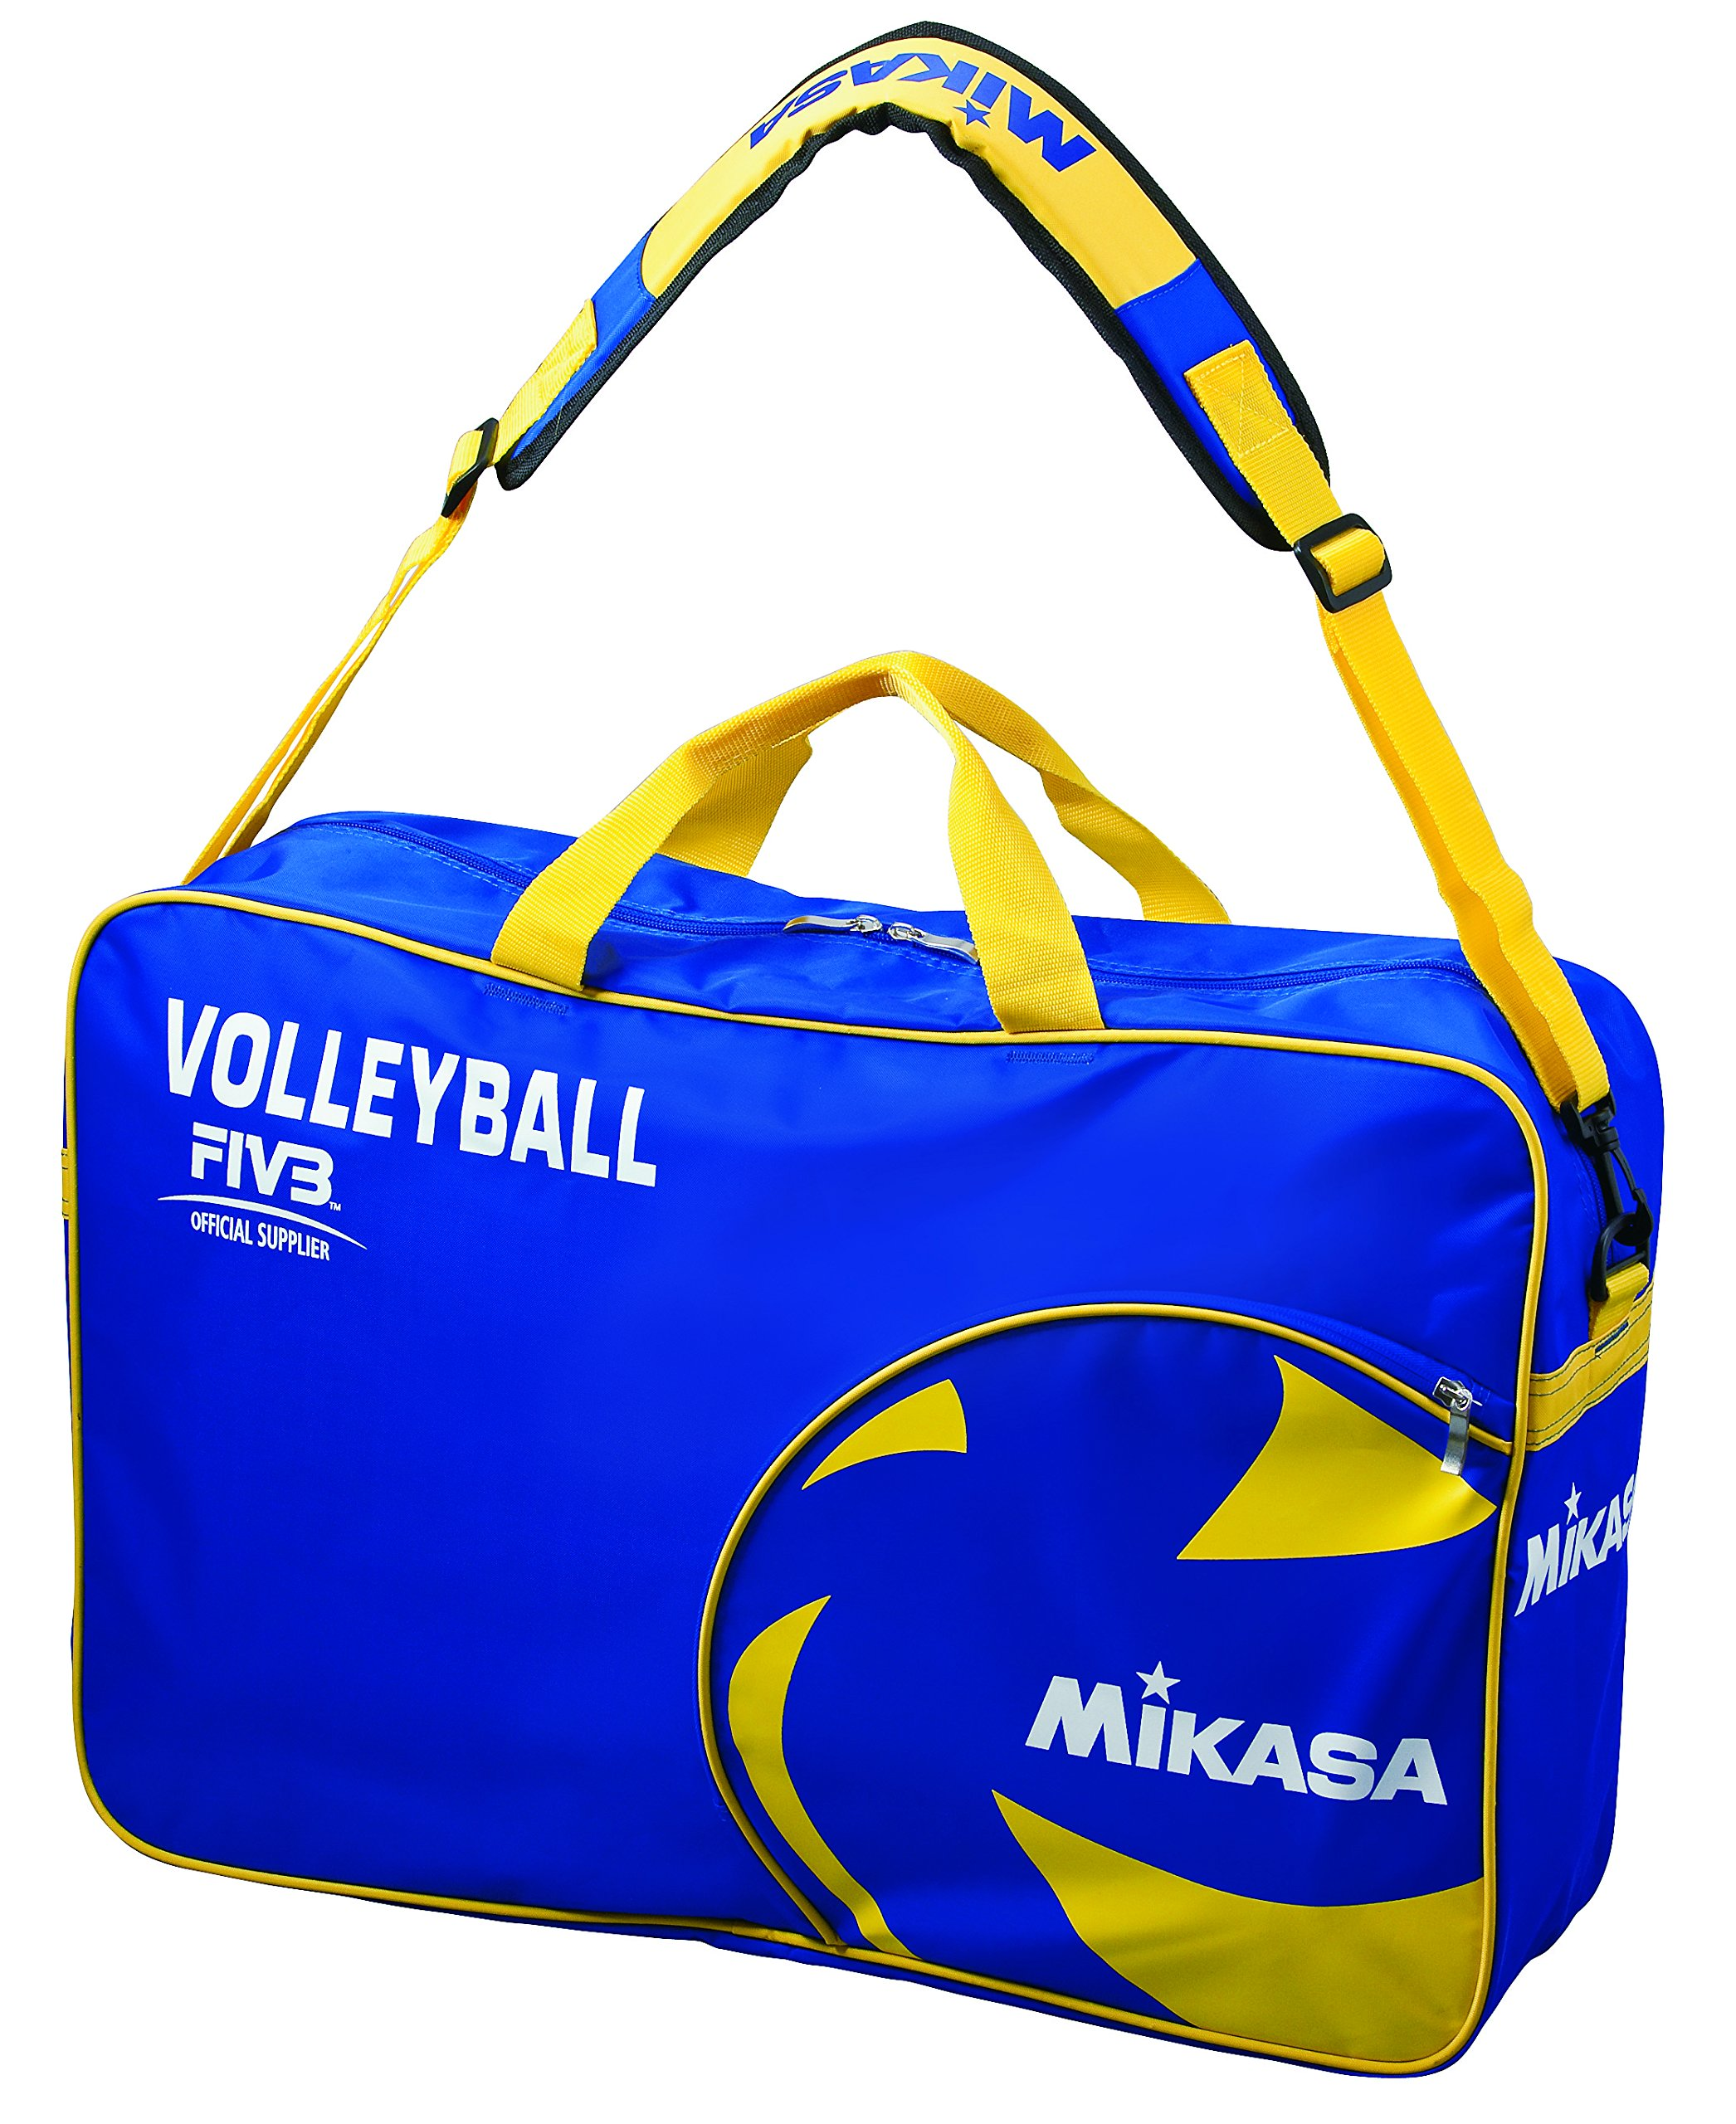 Mikasa Sports Volleyball Carrying Bag by Holds 6 Balls, Blue/Yellow